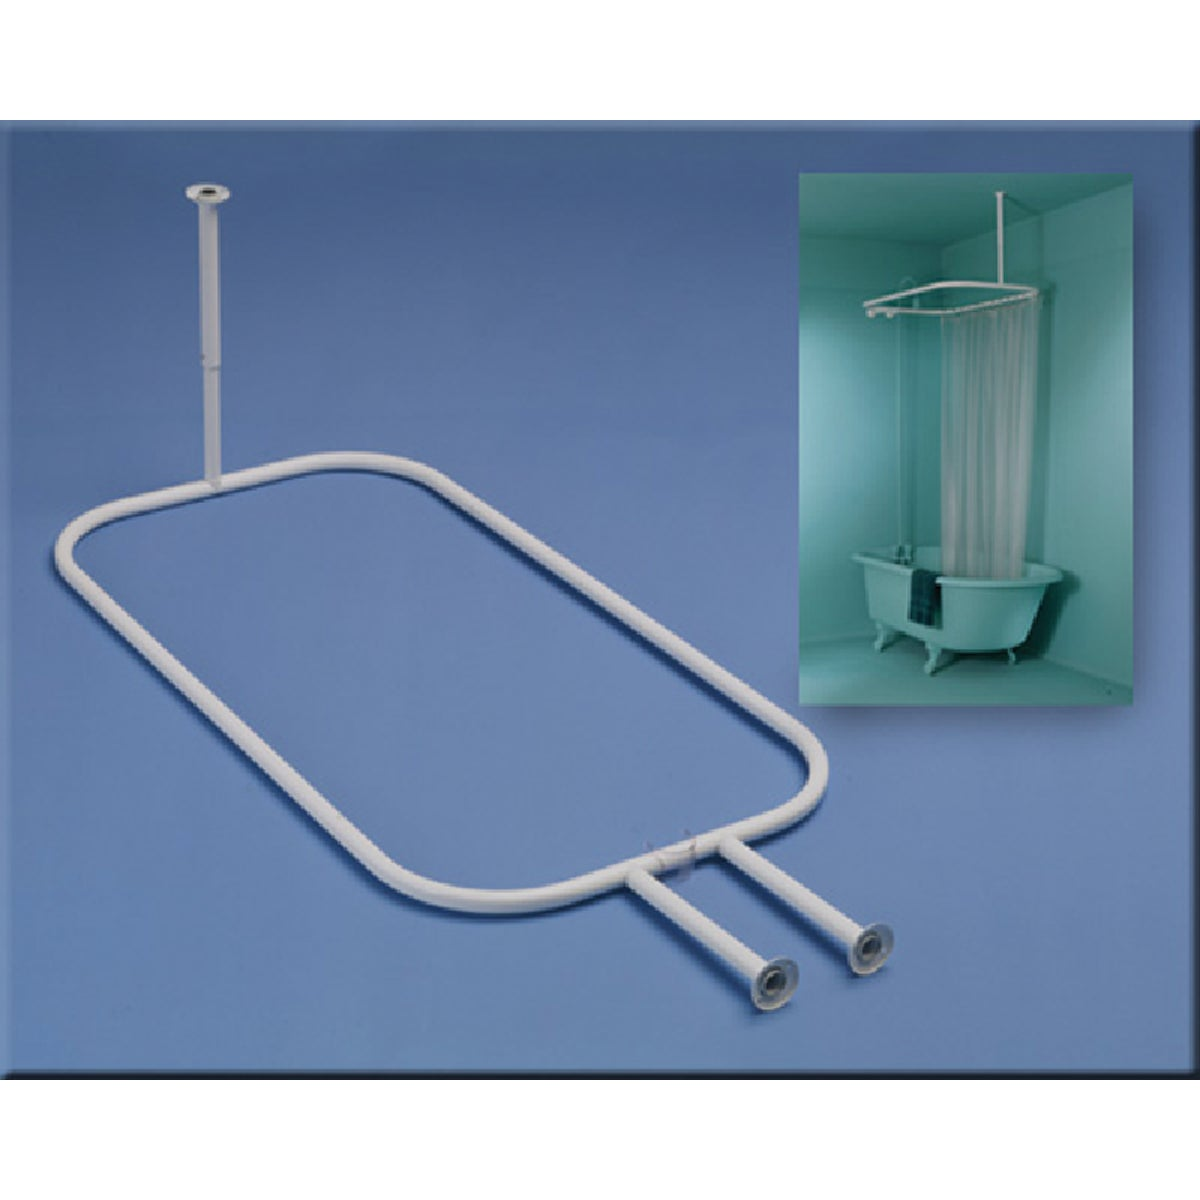 WHT HOOP SHOWER ROD - 34941 by Zenith Prod Corp